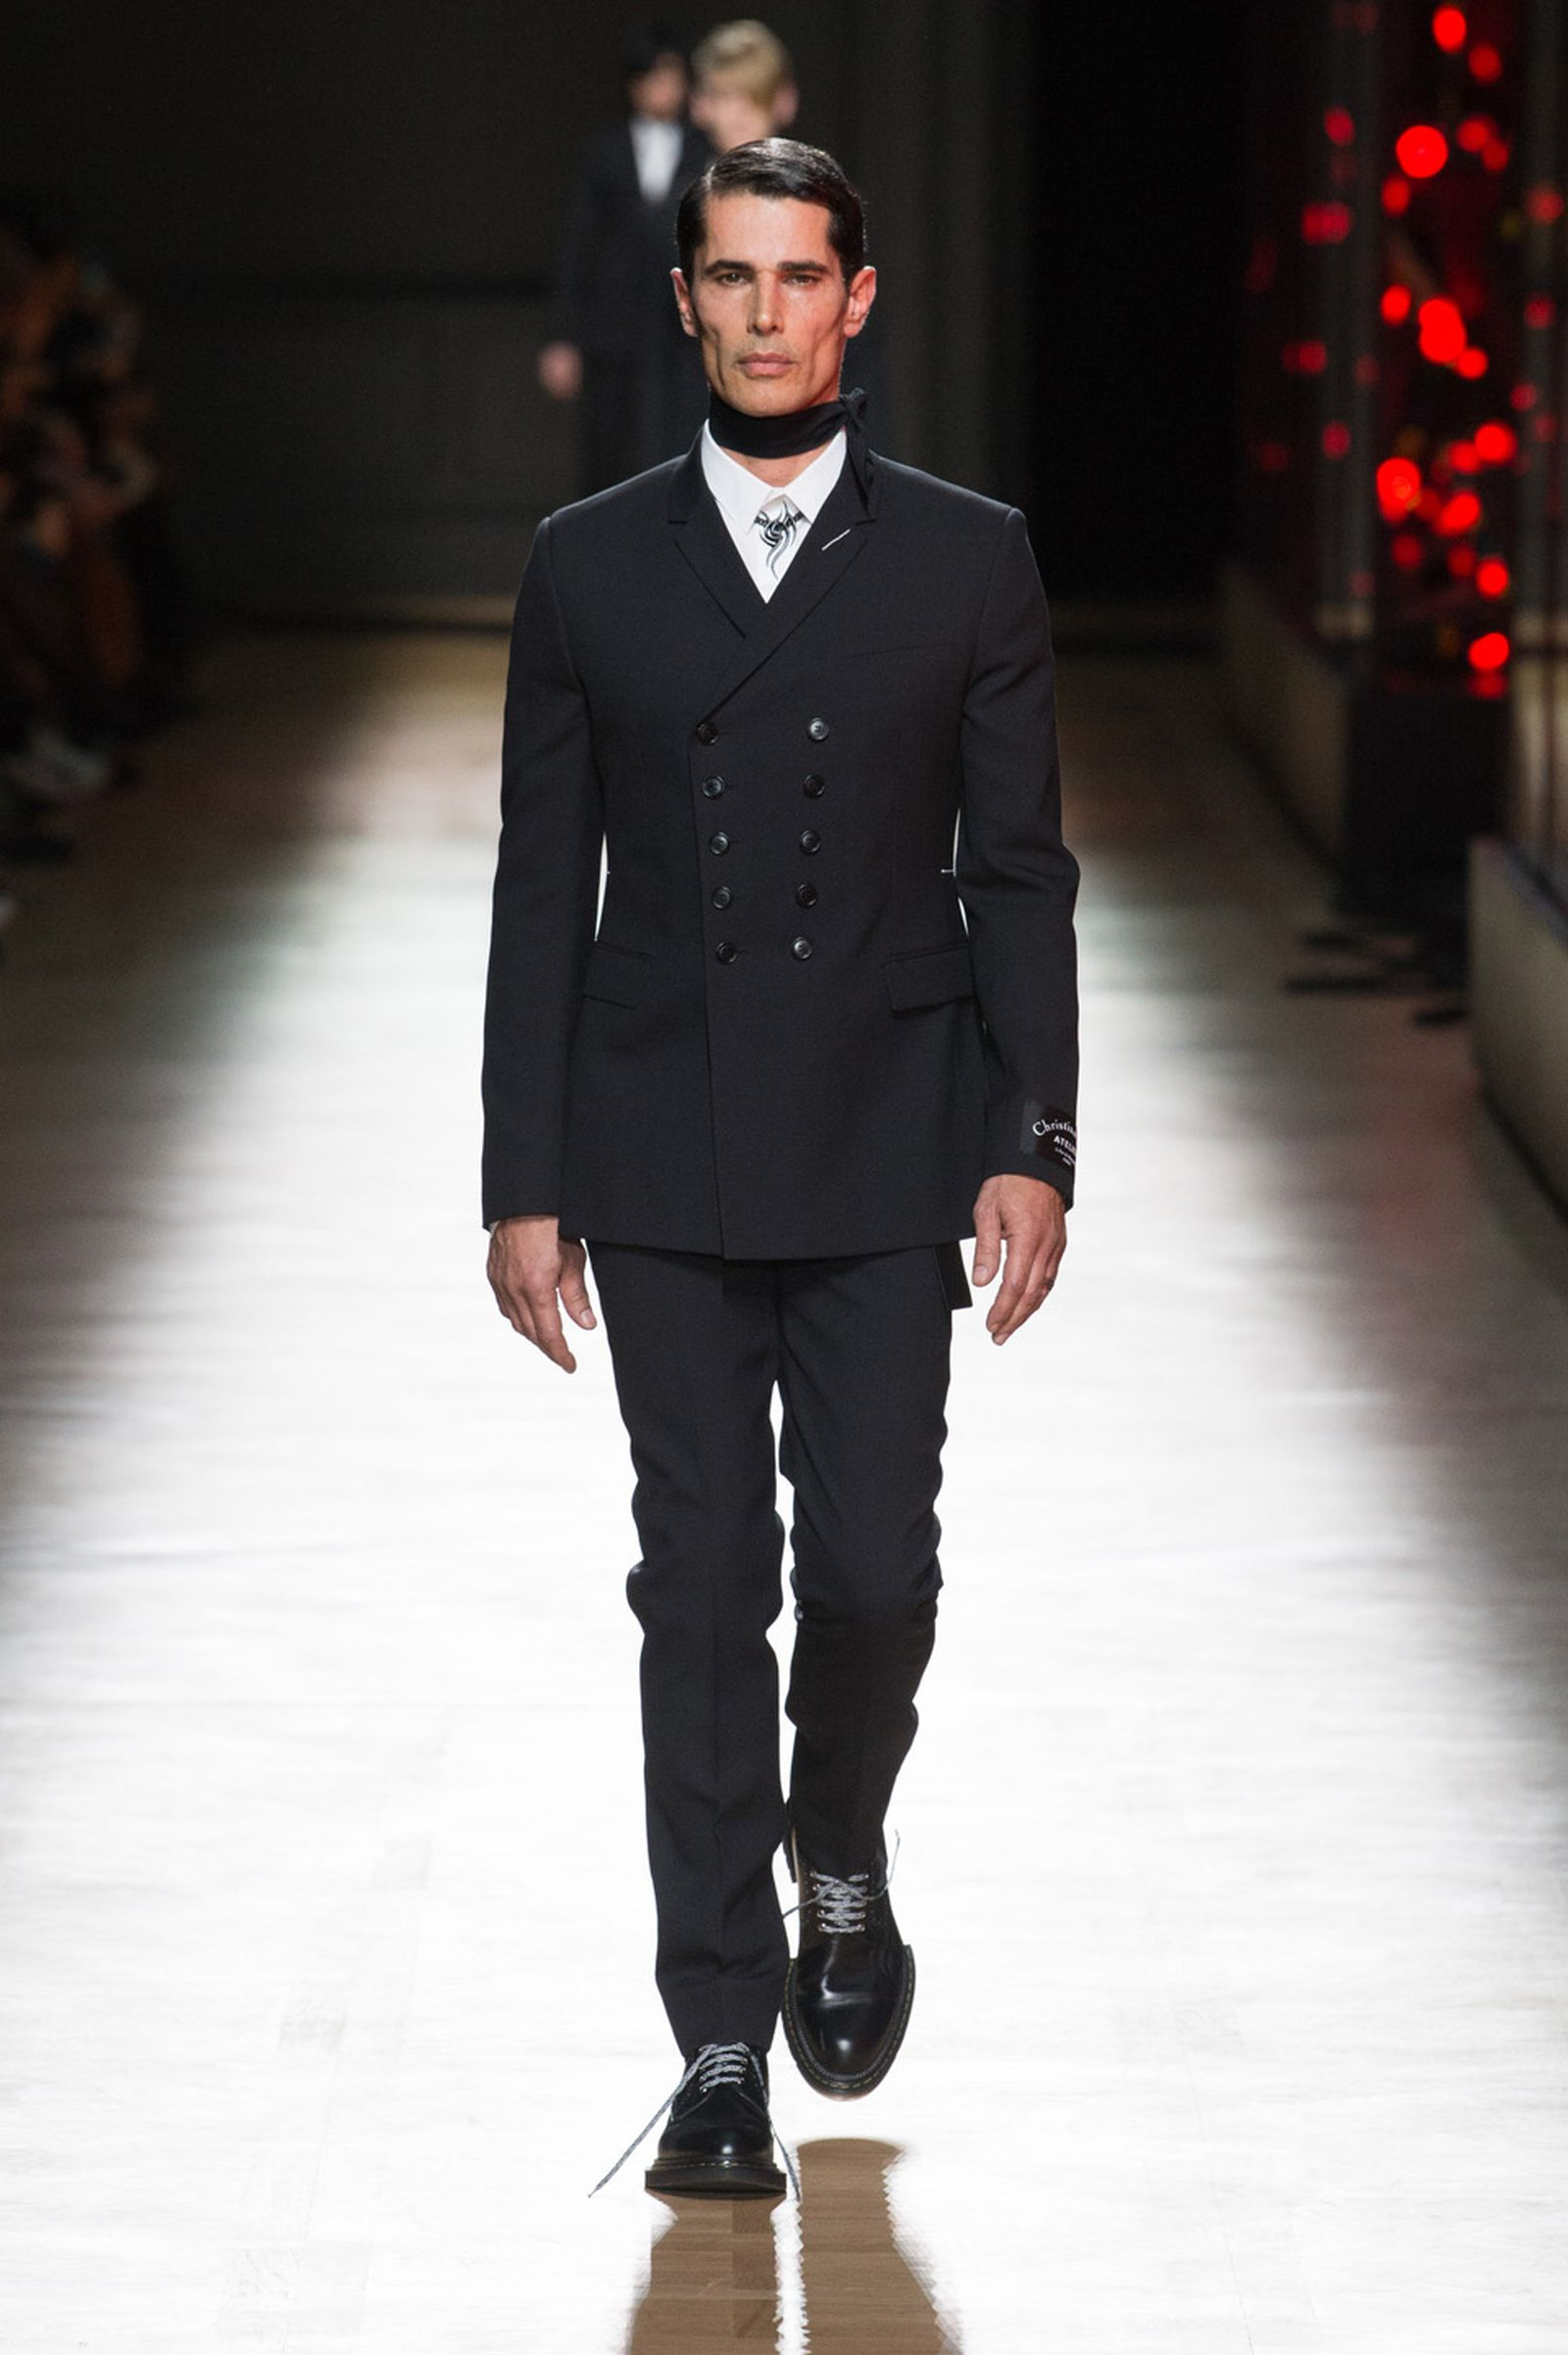 DIOR HOMME WINTER 18 19 BY PATRICE STABLE look01 Fall/WInter 2018 runway